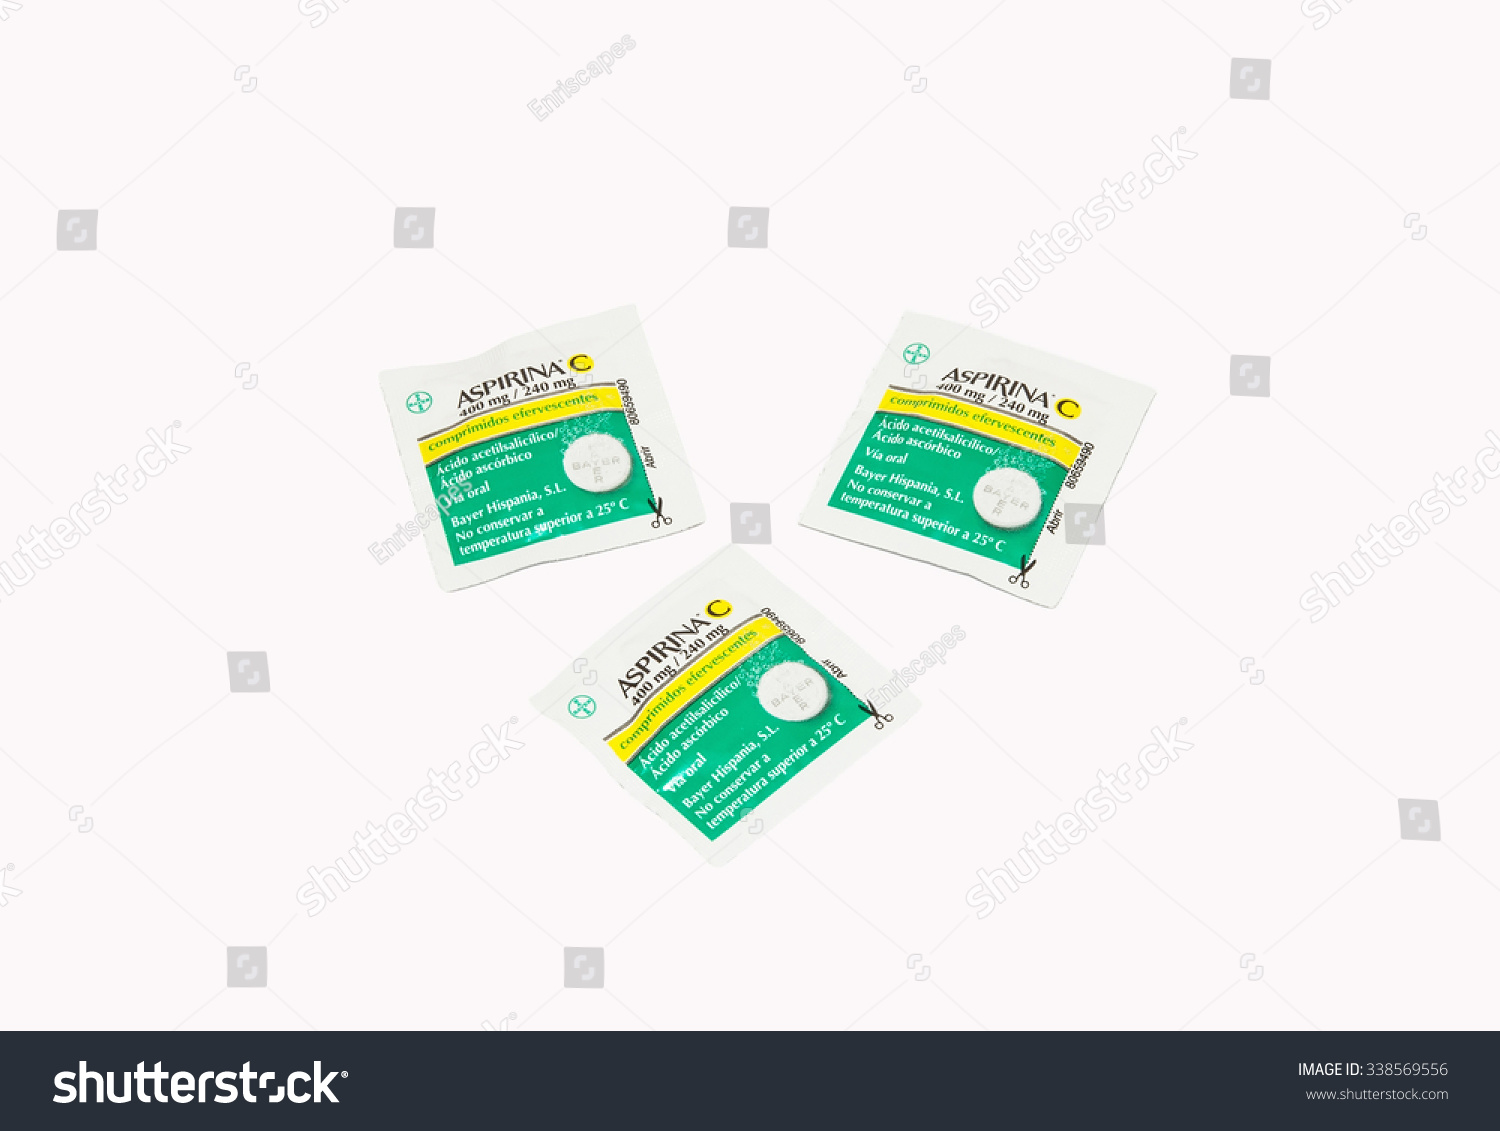 Madrid spain november 12 packaging effervescent stock photo madrid spain november 12 packaging effervescent aspirin with vitamin c isolated on november buycottarizona Image collections